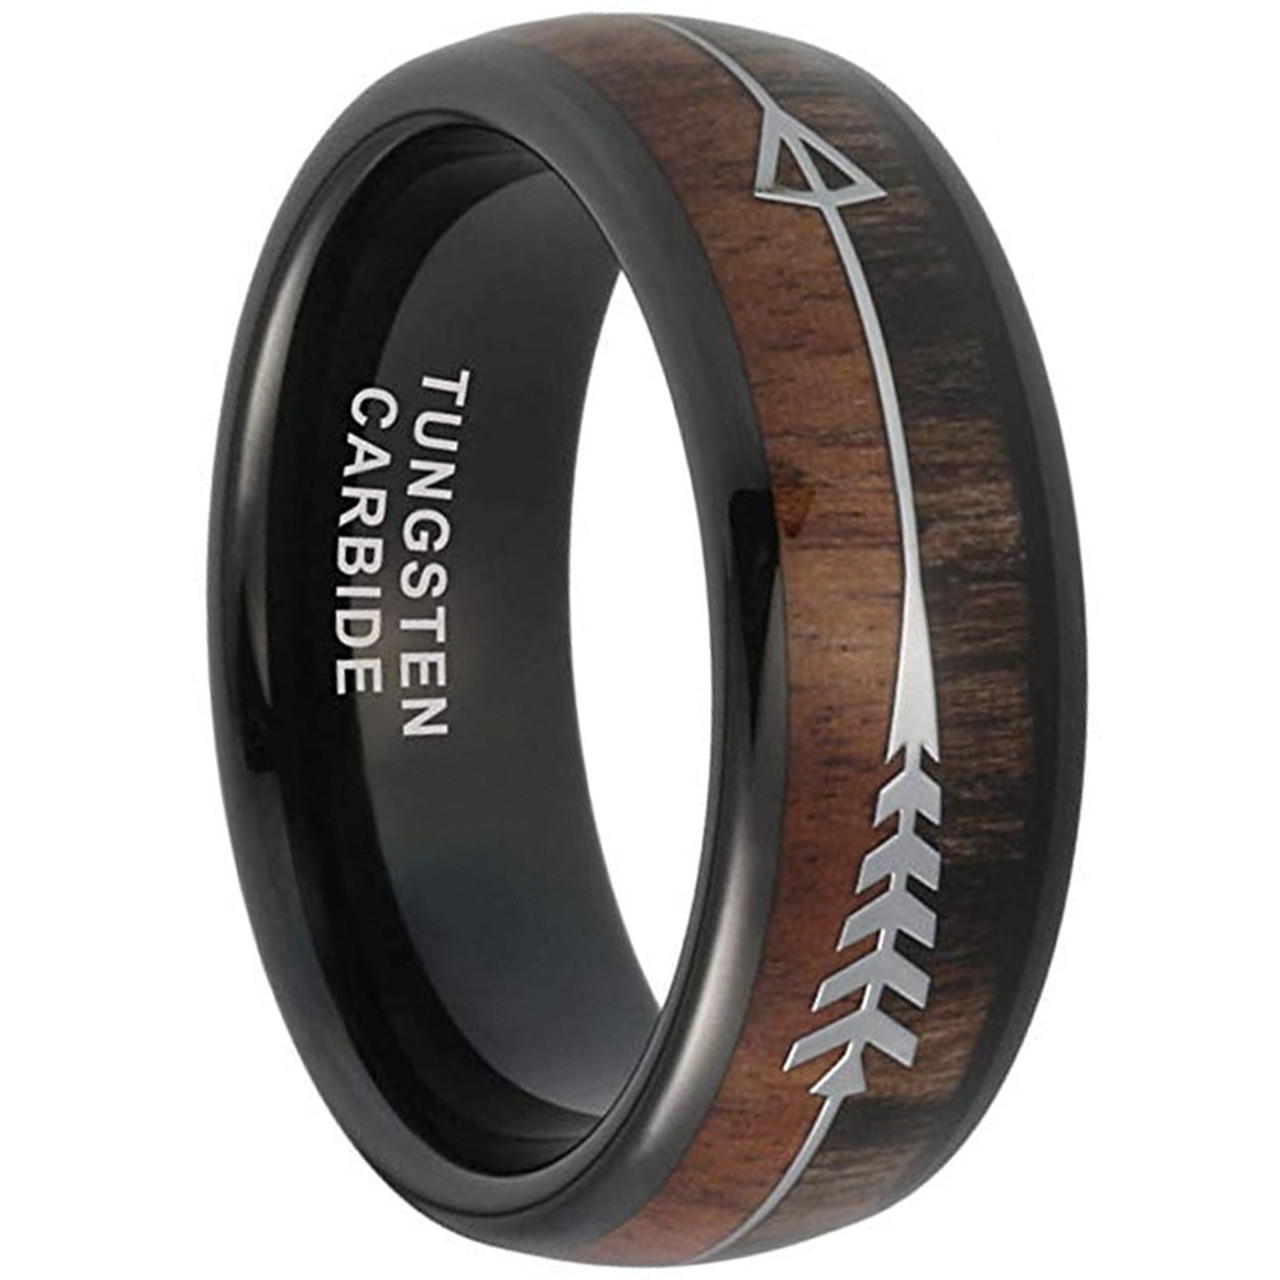 Mens Tungsten Wedding Bands.8mm Unisex Or Men S Tungsten Wedding Bands Black Cupid S Arrow Over Wood Inlay Tungsten Ring With High Polish Dark Wood Inlay Domed Top Ring